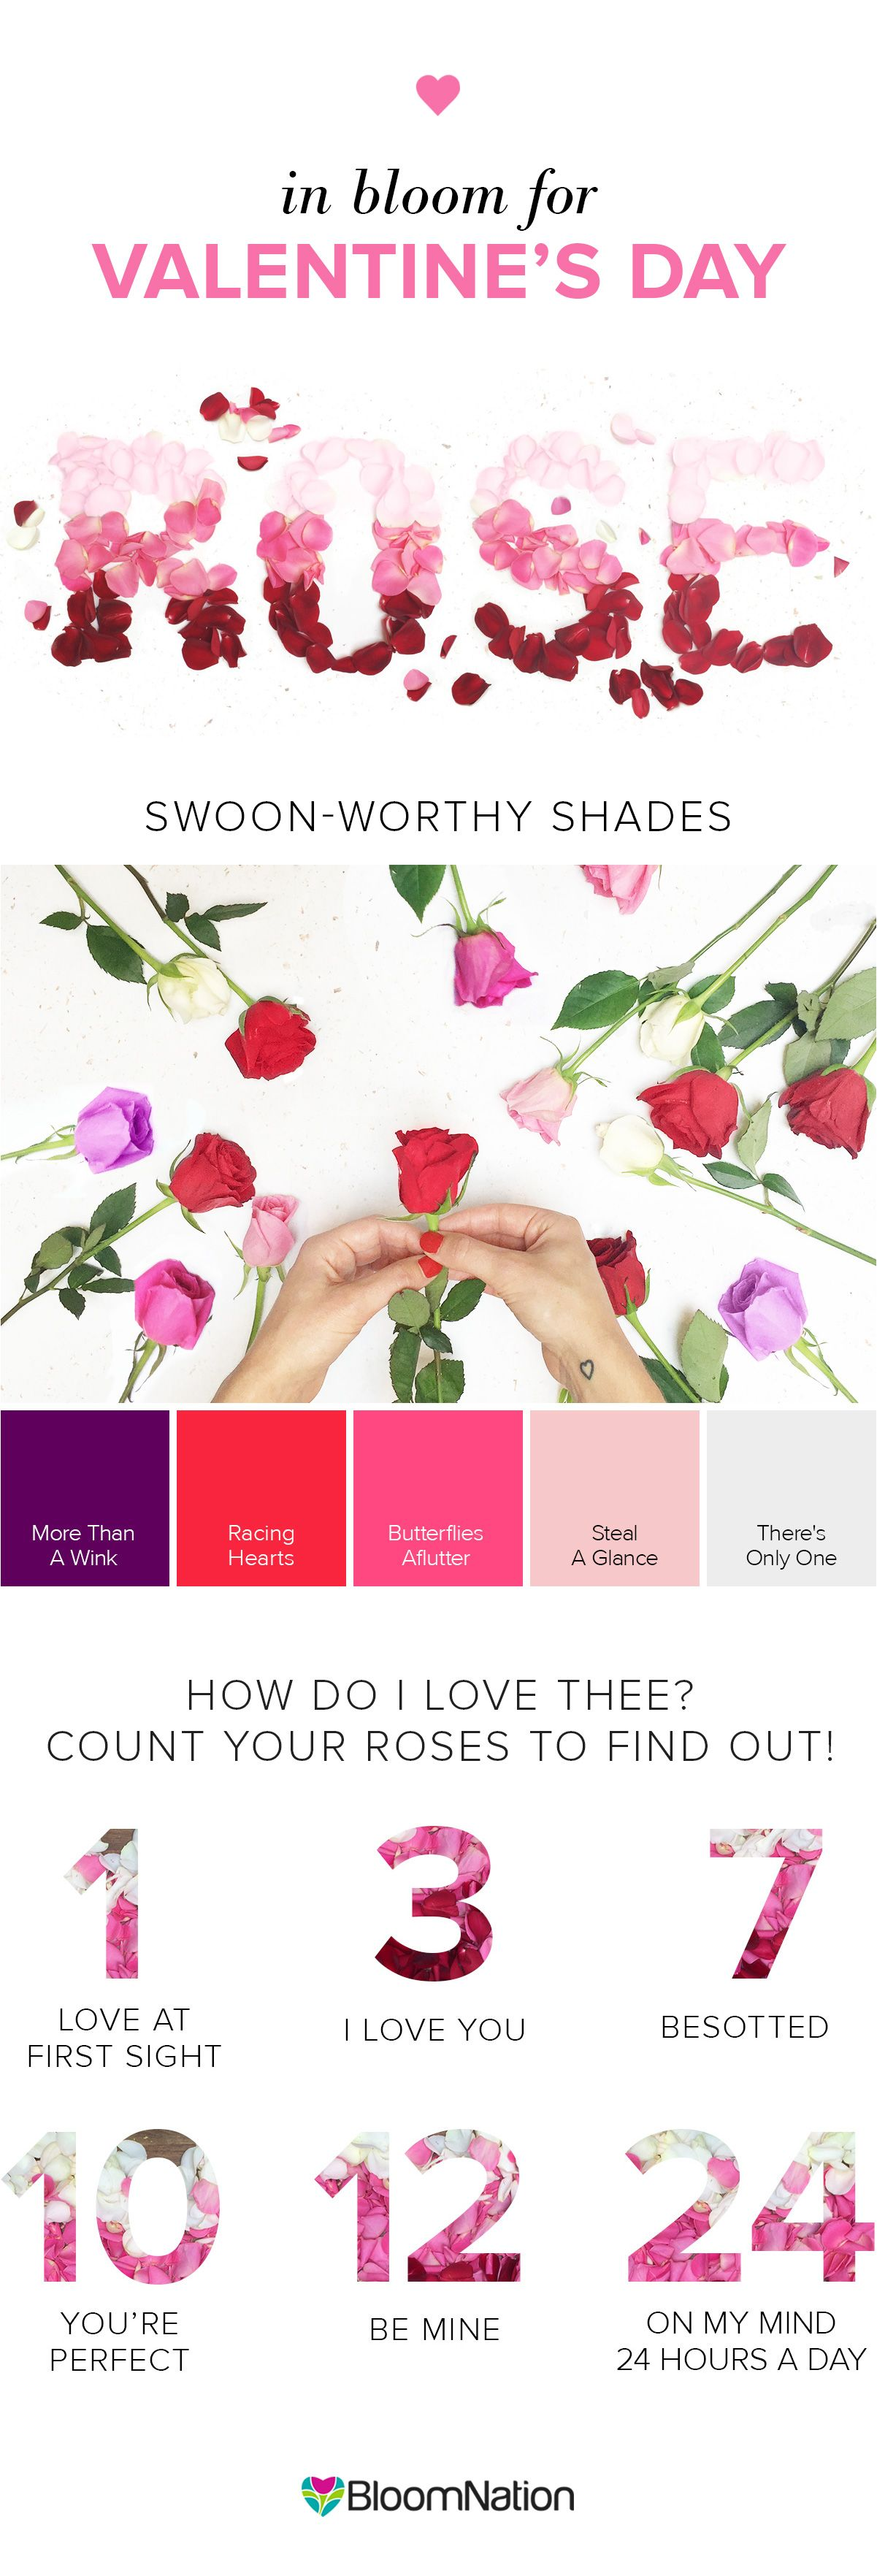 What Is The Meaning Of A Rose Check Out The Meaning Behind How Many